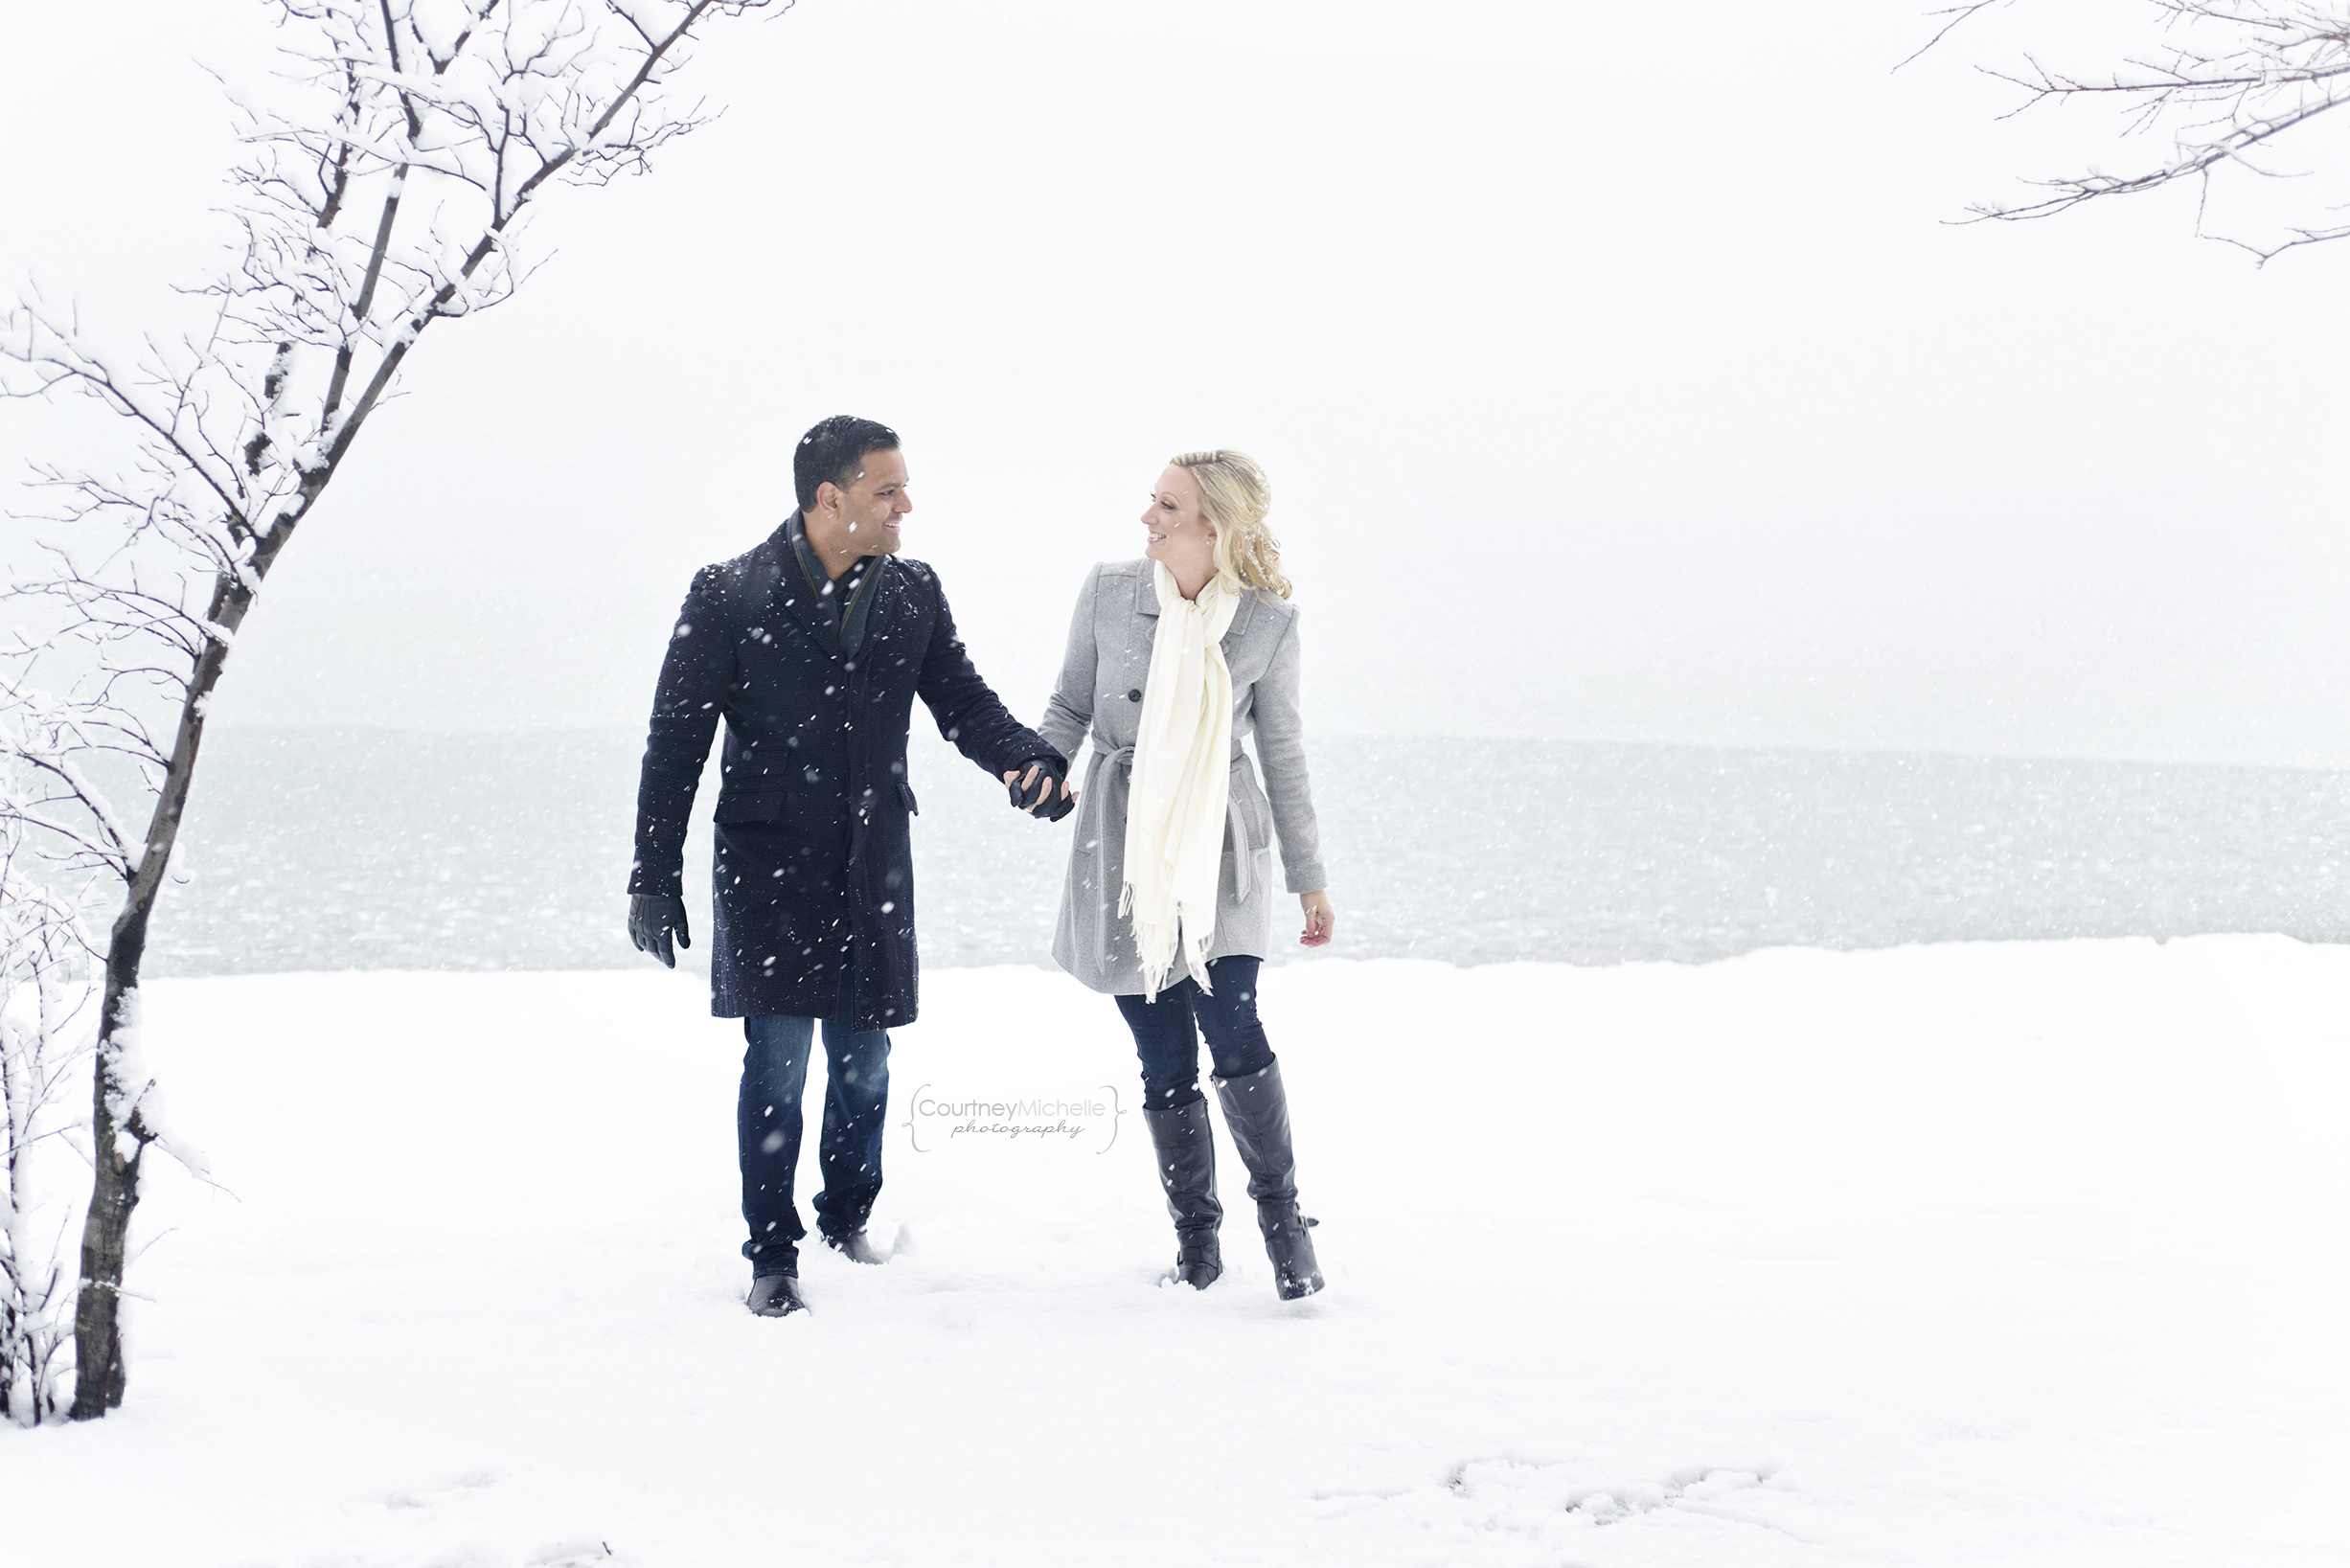 snowy-chicago-engagement-photography-museum-campus-walking-lake-michigan-holding-hands-in-snow-courtney-laper©COPYRIGHTCMP-3451.jpg